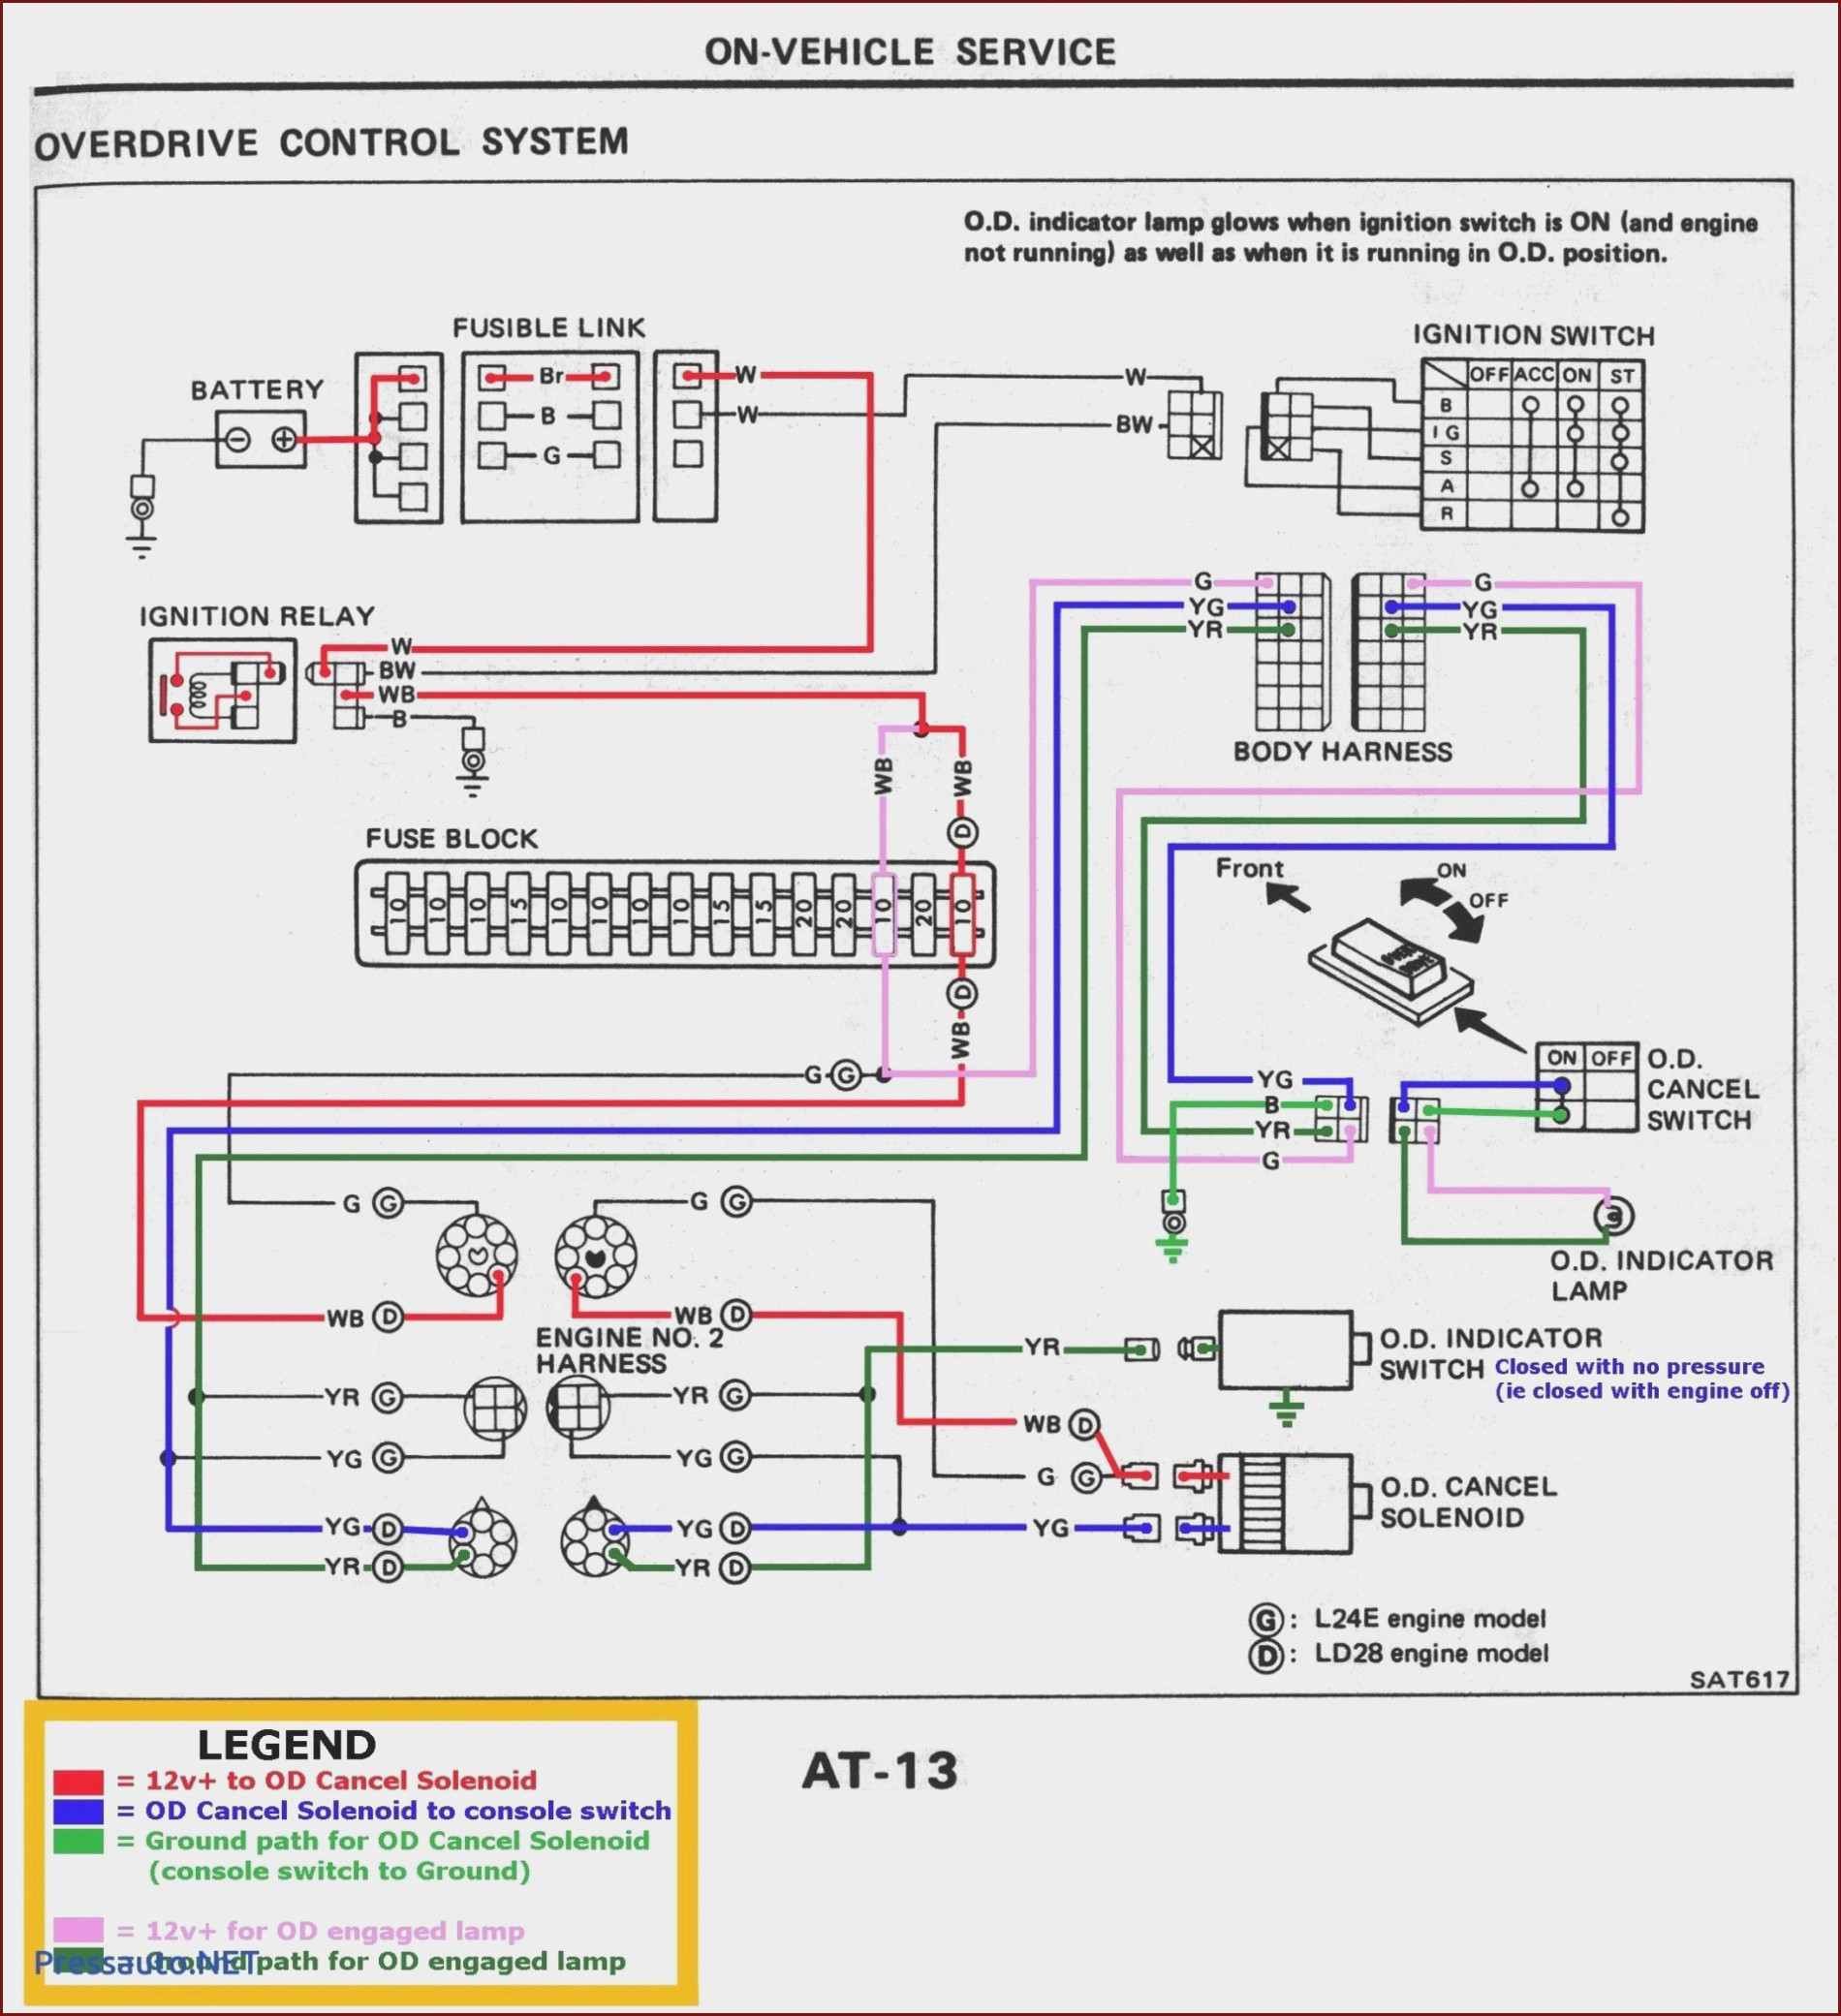 Air Brake Diagram Electrical Wiring Diagrams for Dummies at Manuals Library Of Air Brake Diagram